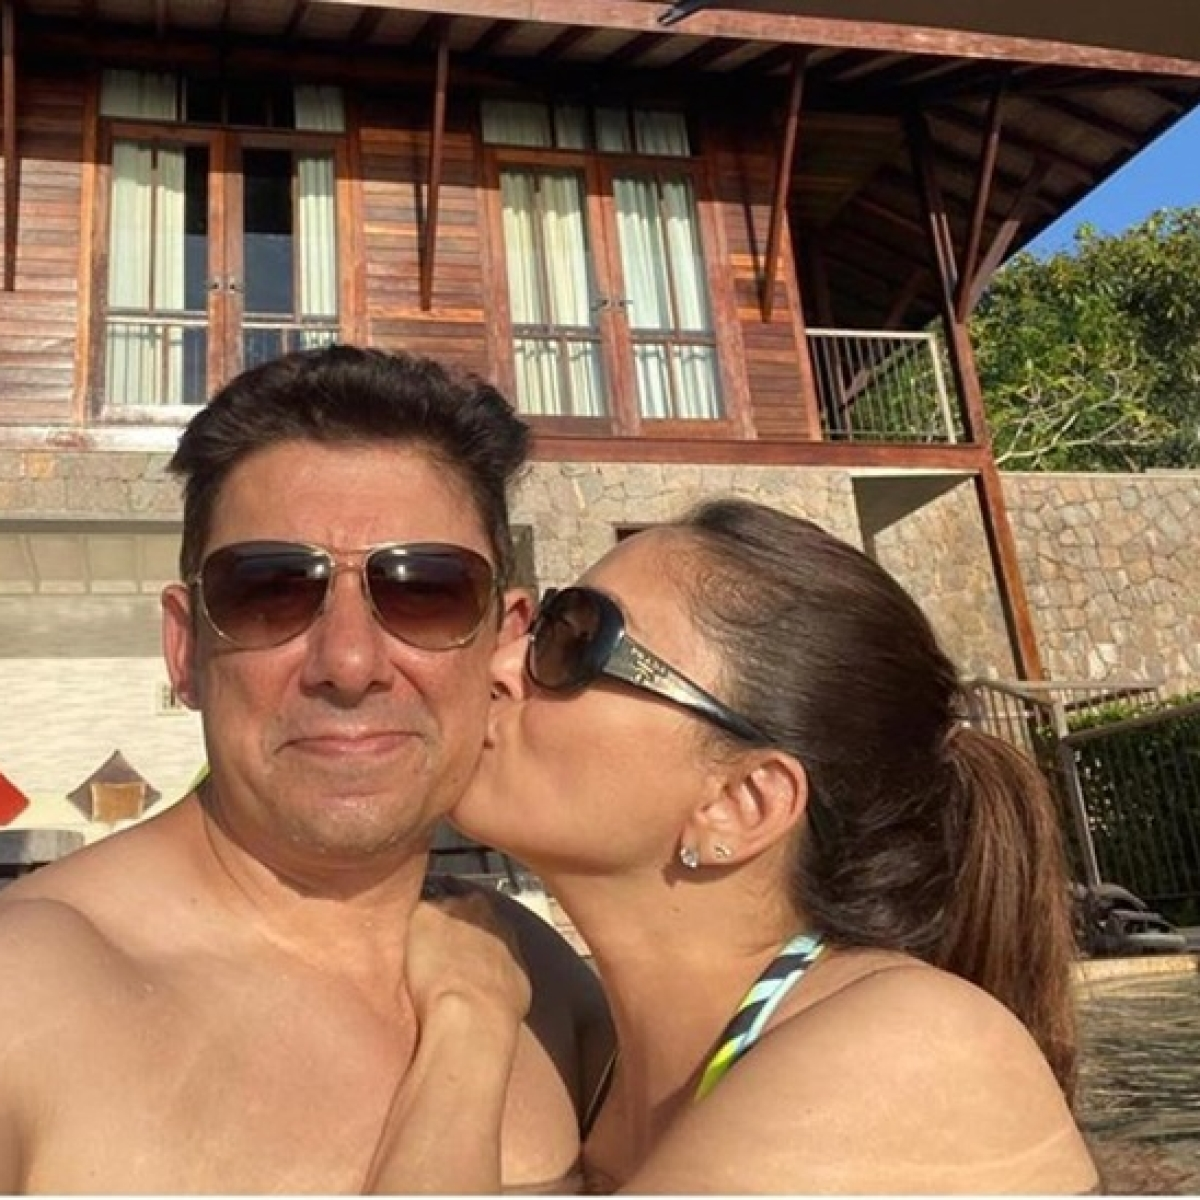 Madhuri Dixit and Dr. Sriram Nene are giving us serious couple goals with their vacay pics